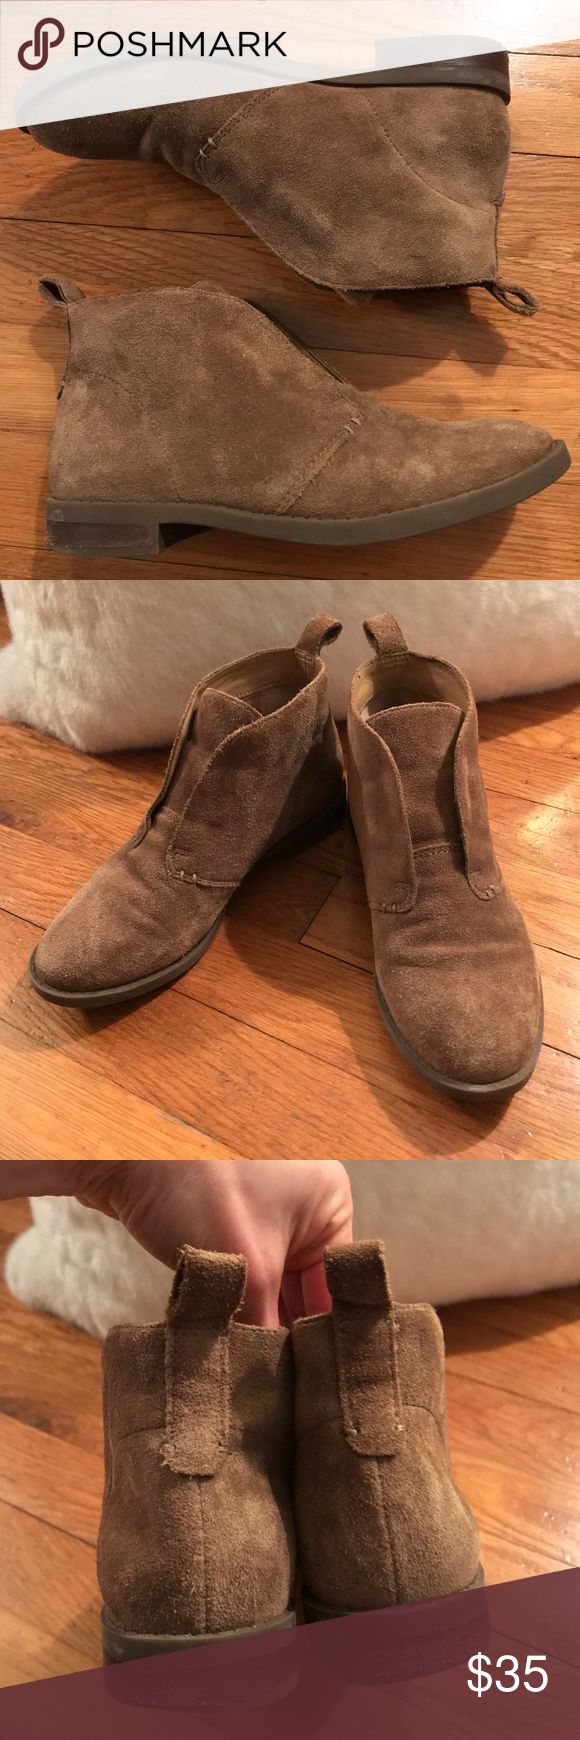 Franco Sarto suede booties Attention petite ladies!! Gently used Franco Sarto suede slip on booties. Women's size 4.5, hard to find cute shoes in this size!  Could work for a young girl as well. Love the soft feel and how the neutral tan color goes with anything!  Some very minor signs of wear, see photos and ask me anything! (Couple minute spots on right toe area and one spot on back of left heel near pull on strip). Make offer!! Franco Sarto Shoes Ankle Boots & Booties